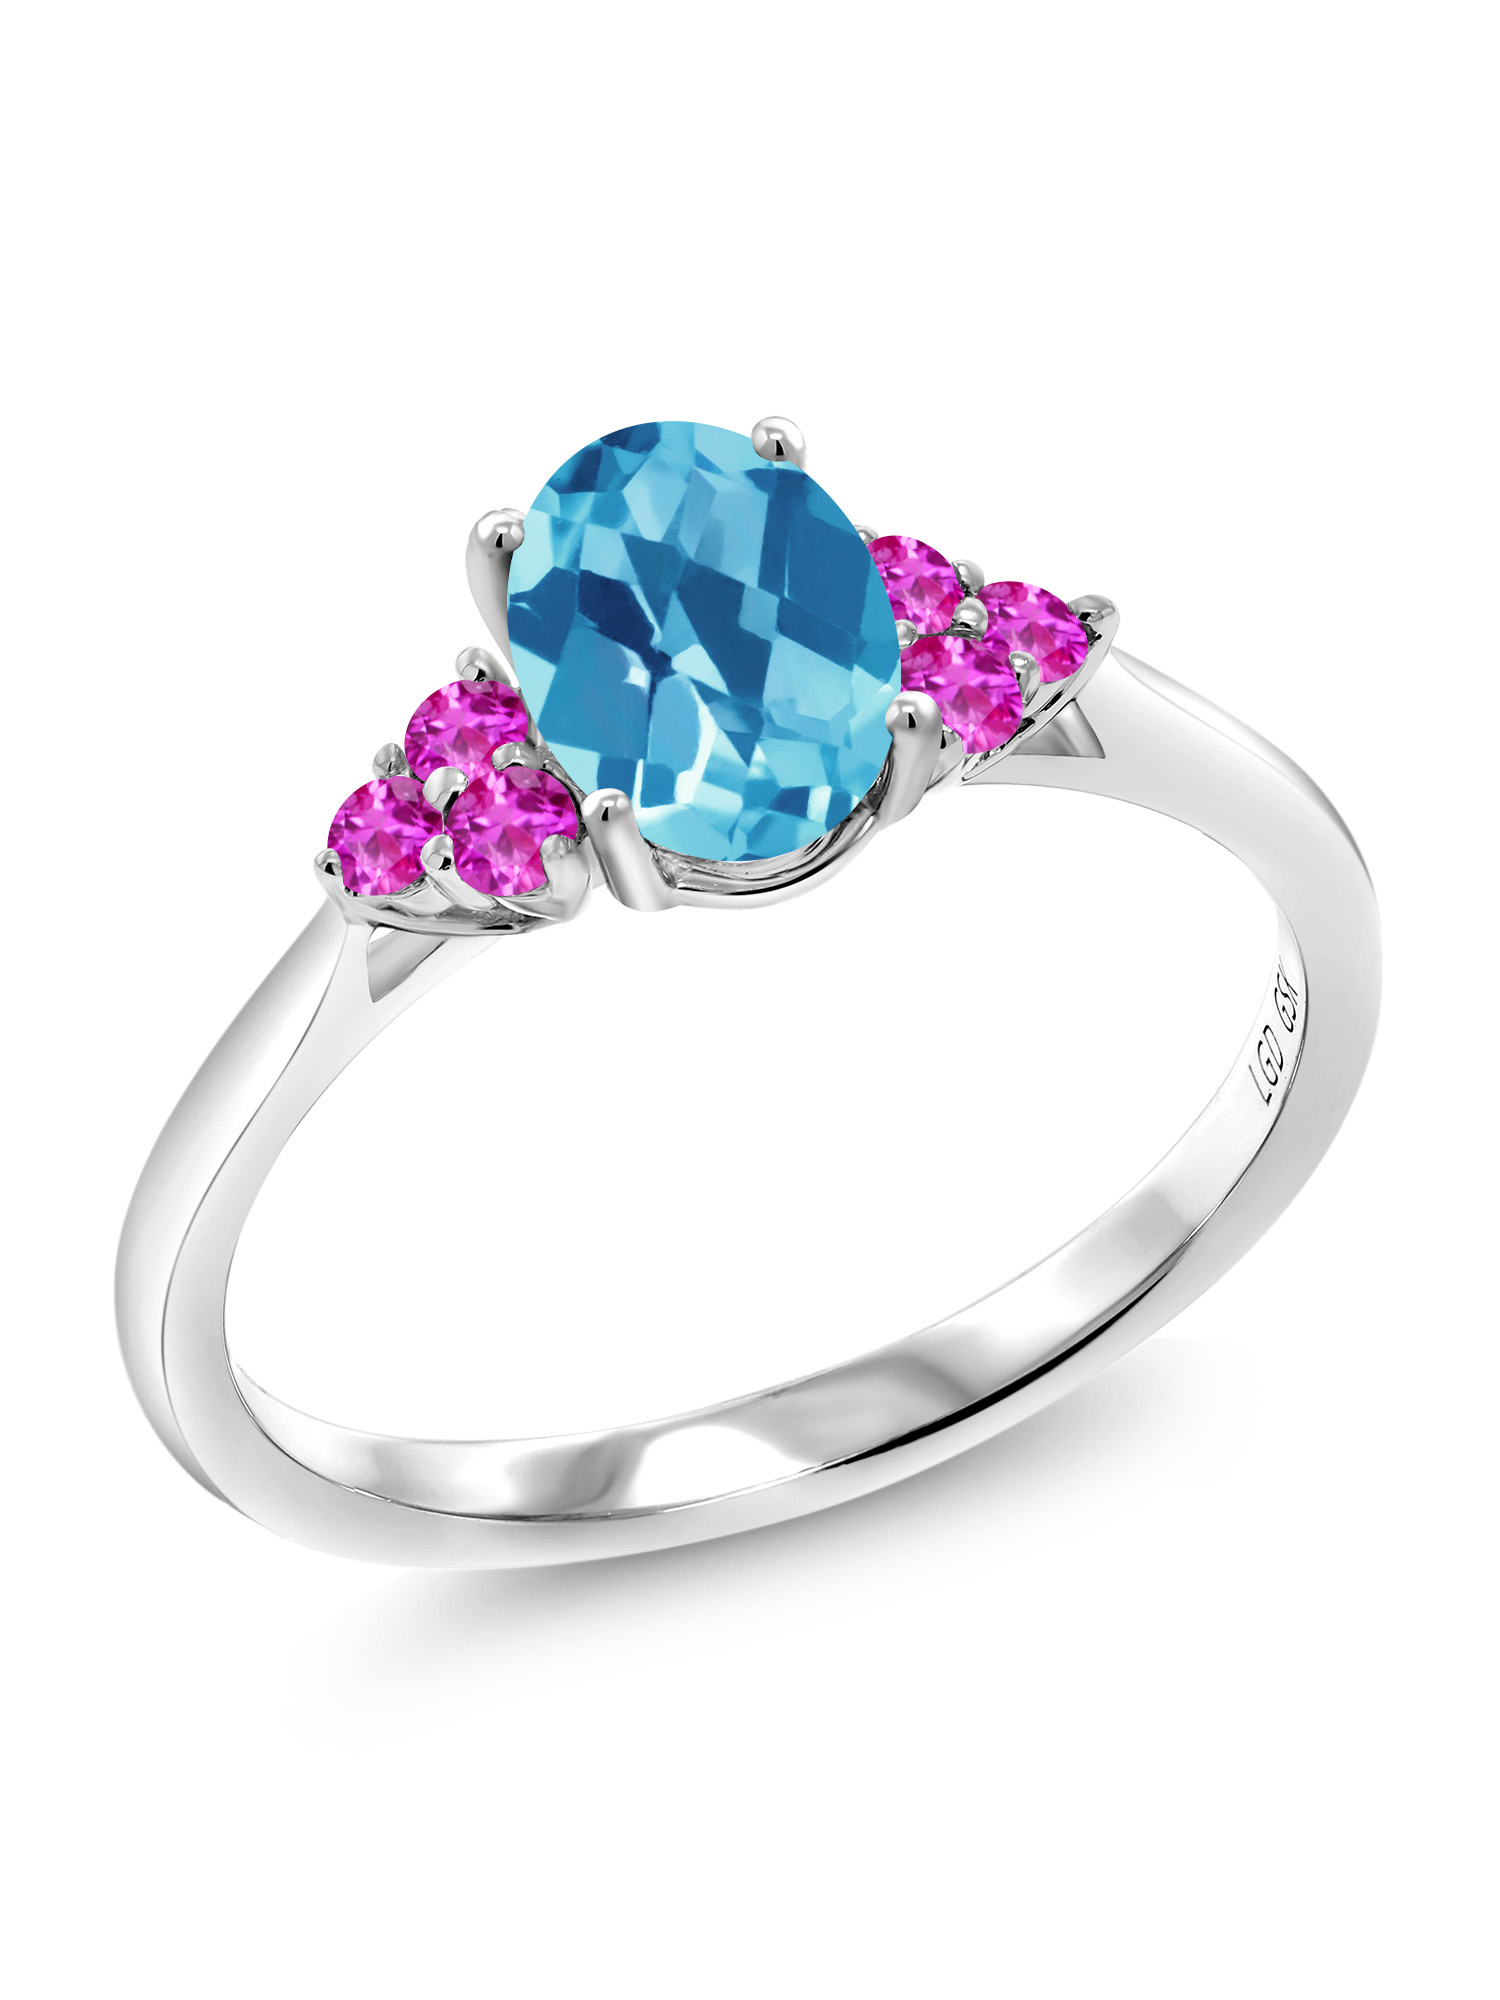 1.60 Ct Oval Checkerboard Swiss Blue Topaz Pink Sapphire 10K White Gold Ring by